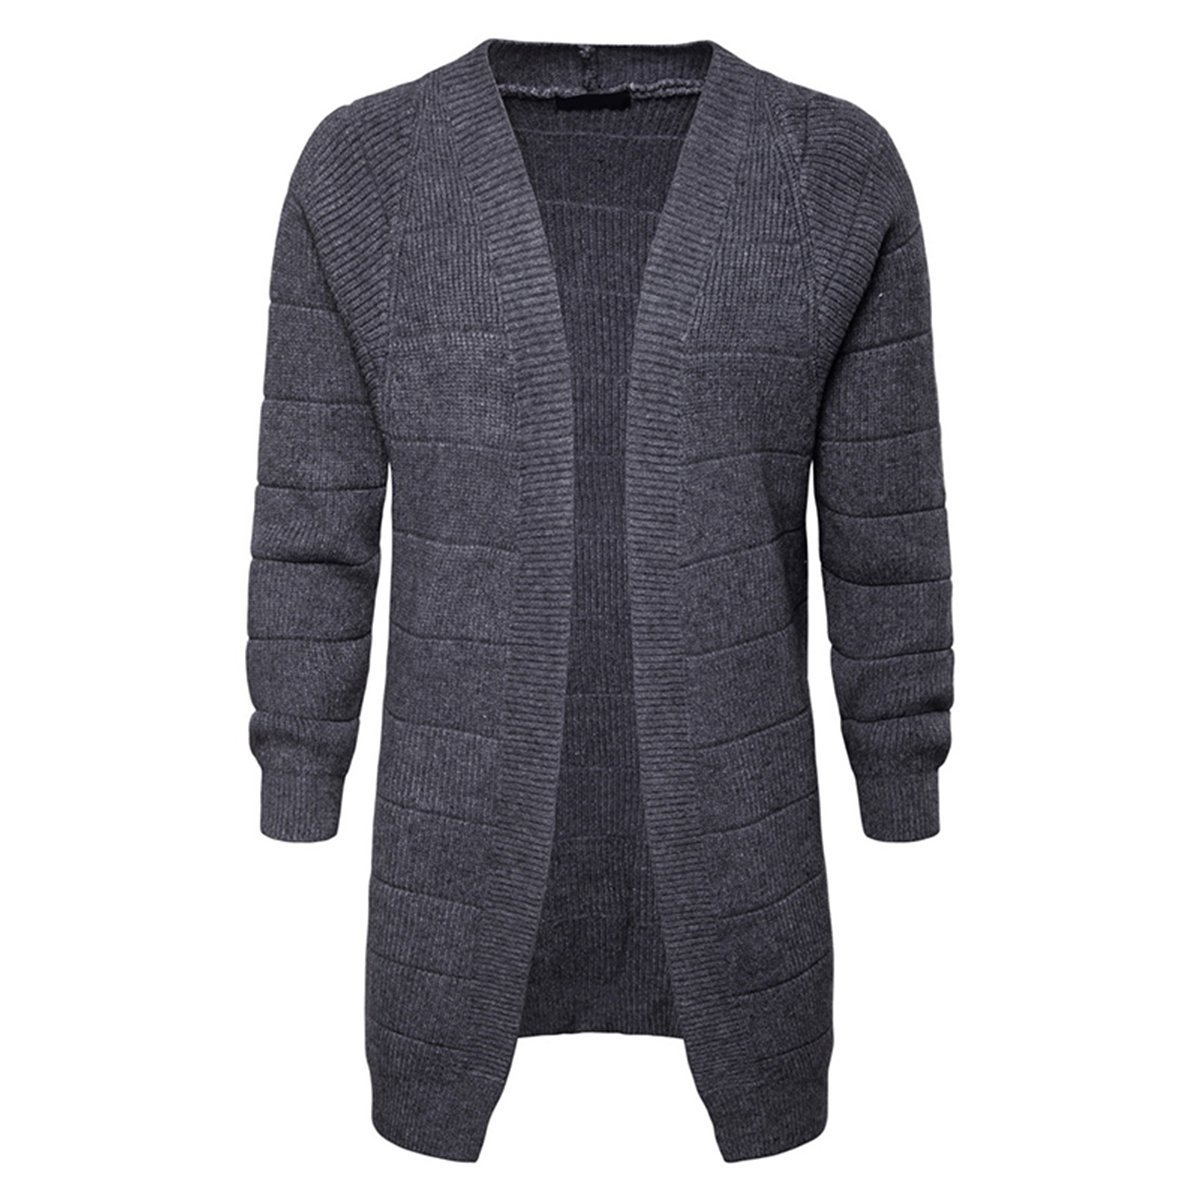 AOWOFS Men's Cardigan Knit Stripe Long Sweater Solid Color Buckleless Casual Long Sleeve